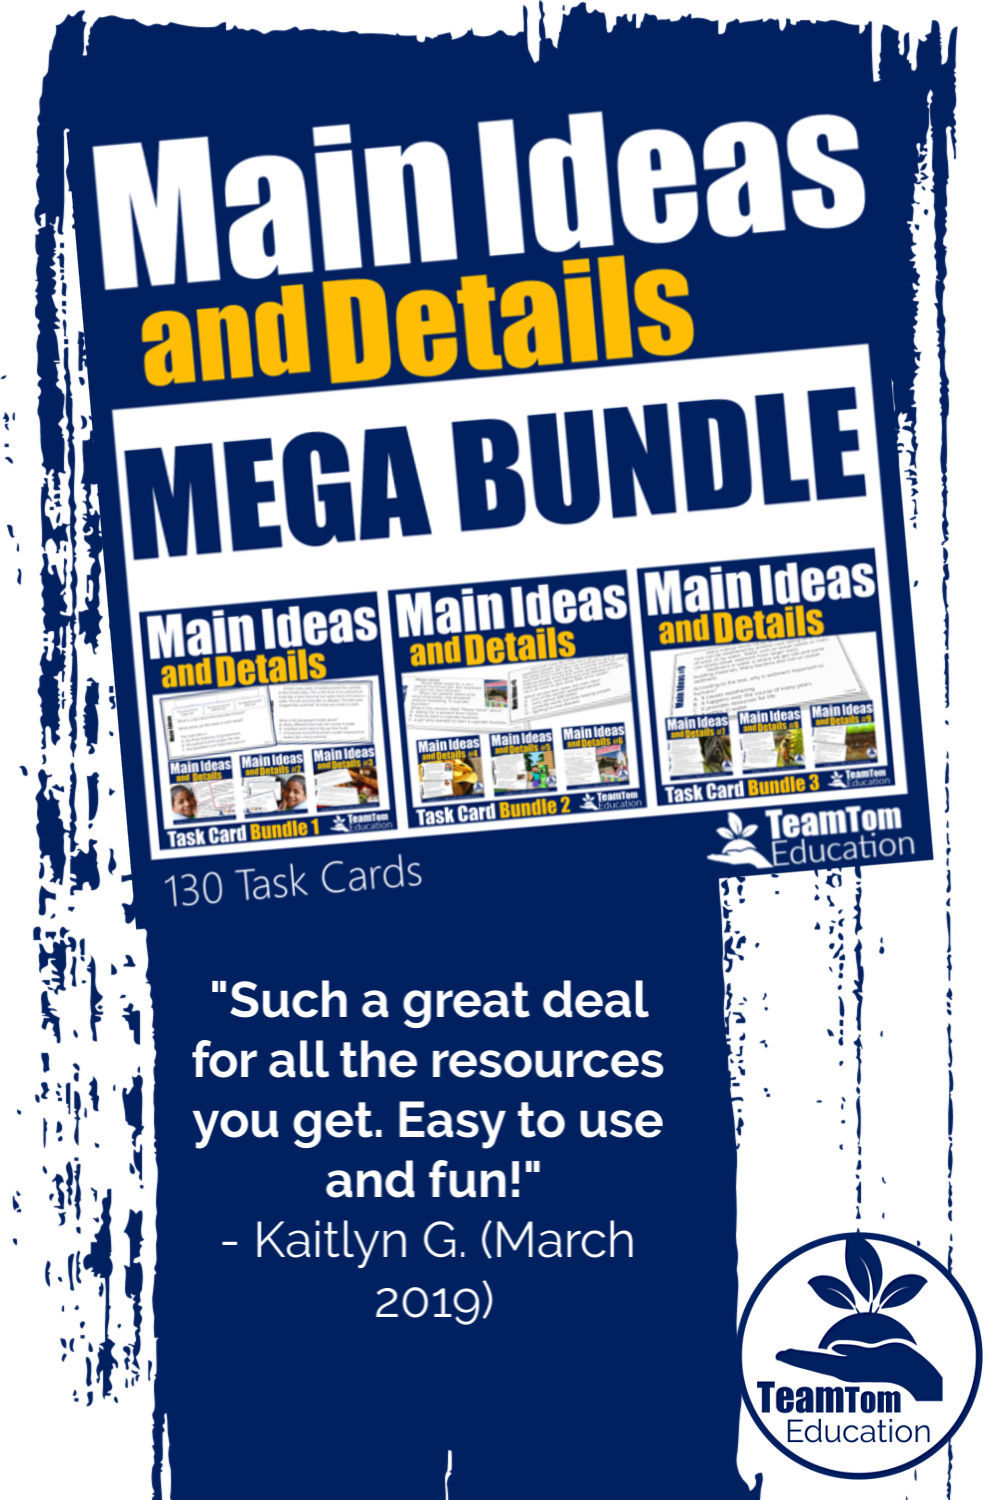 Fantastic resource! I was able to use for every level learner in my classroom. This resource was used in a variety of ways. I highly recommend. Main Ideas and Details Task Cards Mega Bundle from TeamTom Education.